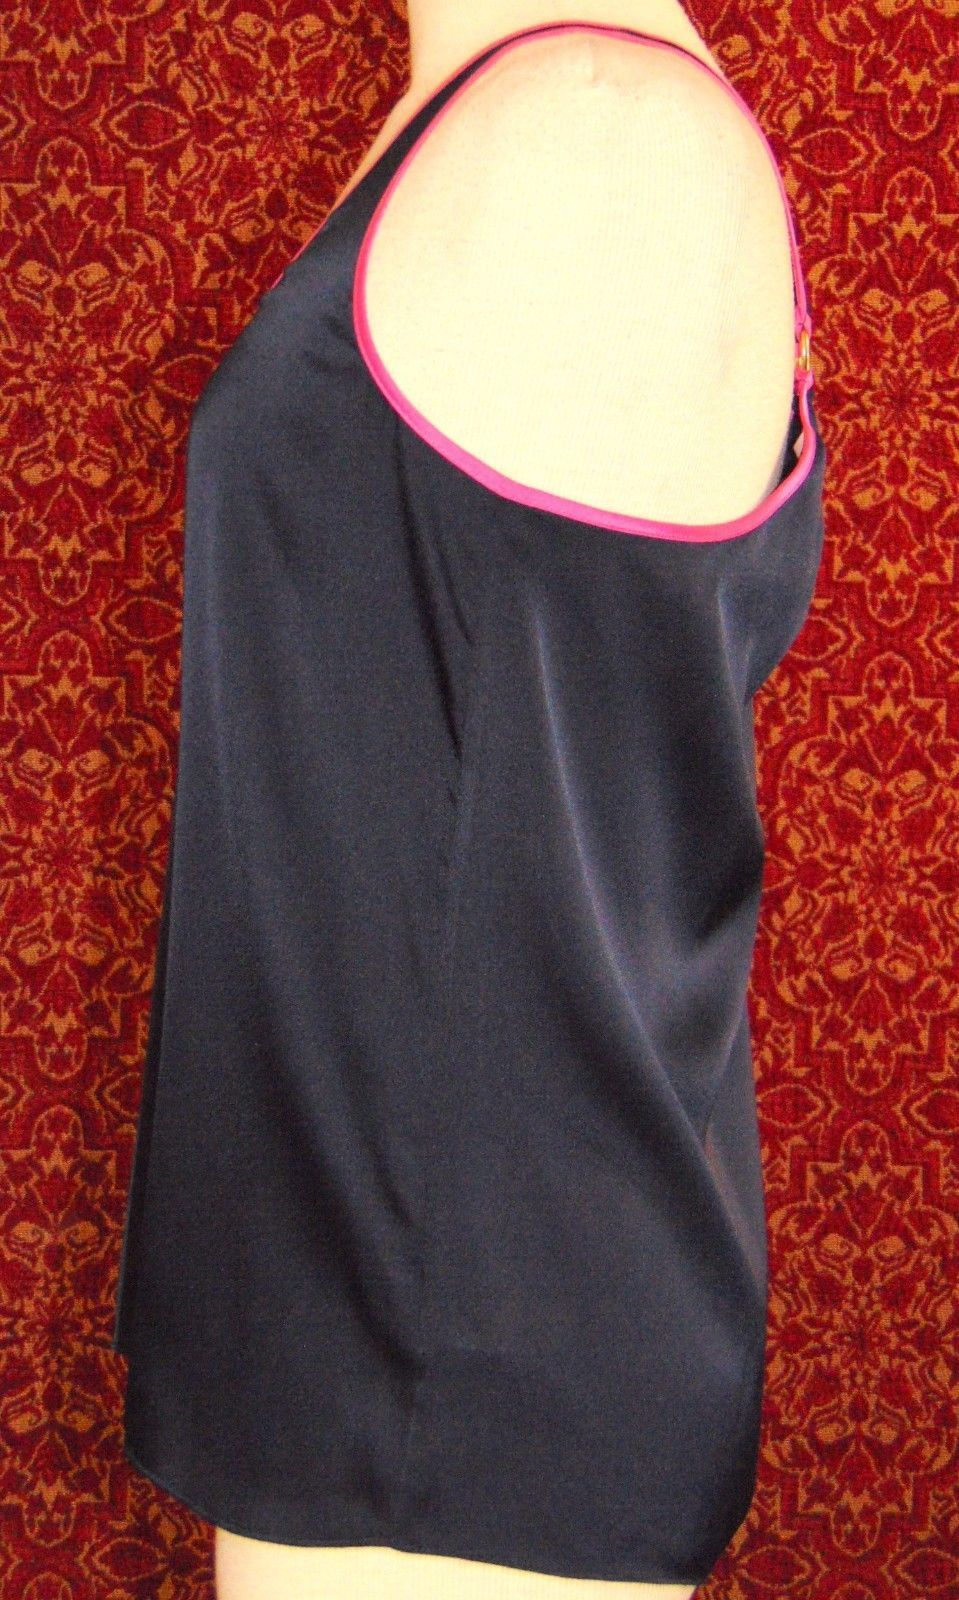 JUICY COUTURE Navy satin sleeveless tank blouse M (T41-03F8G) image 3